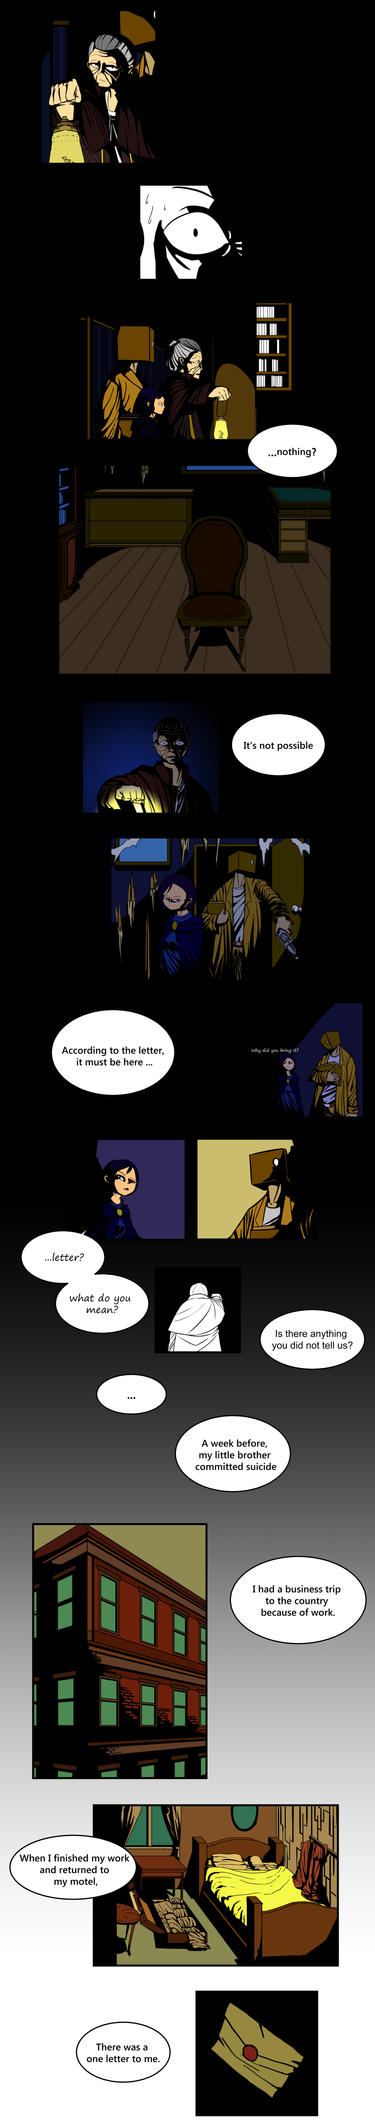 Mr.boxhead N lil'witch chapter 3 part1 by tis1451